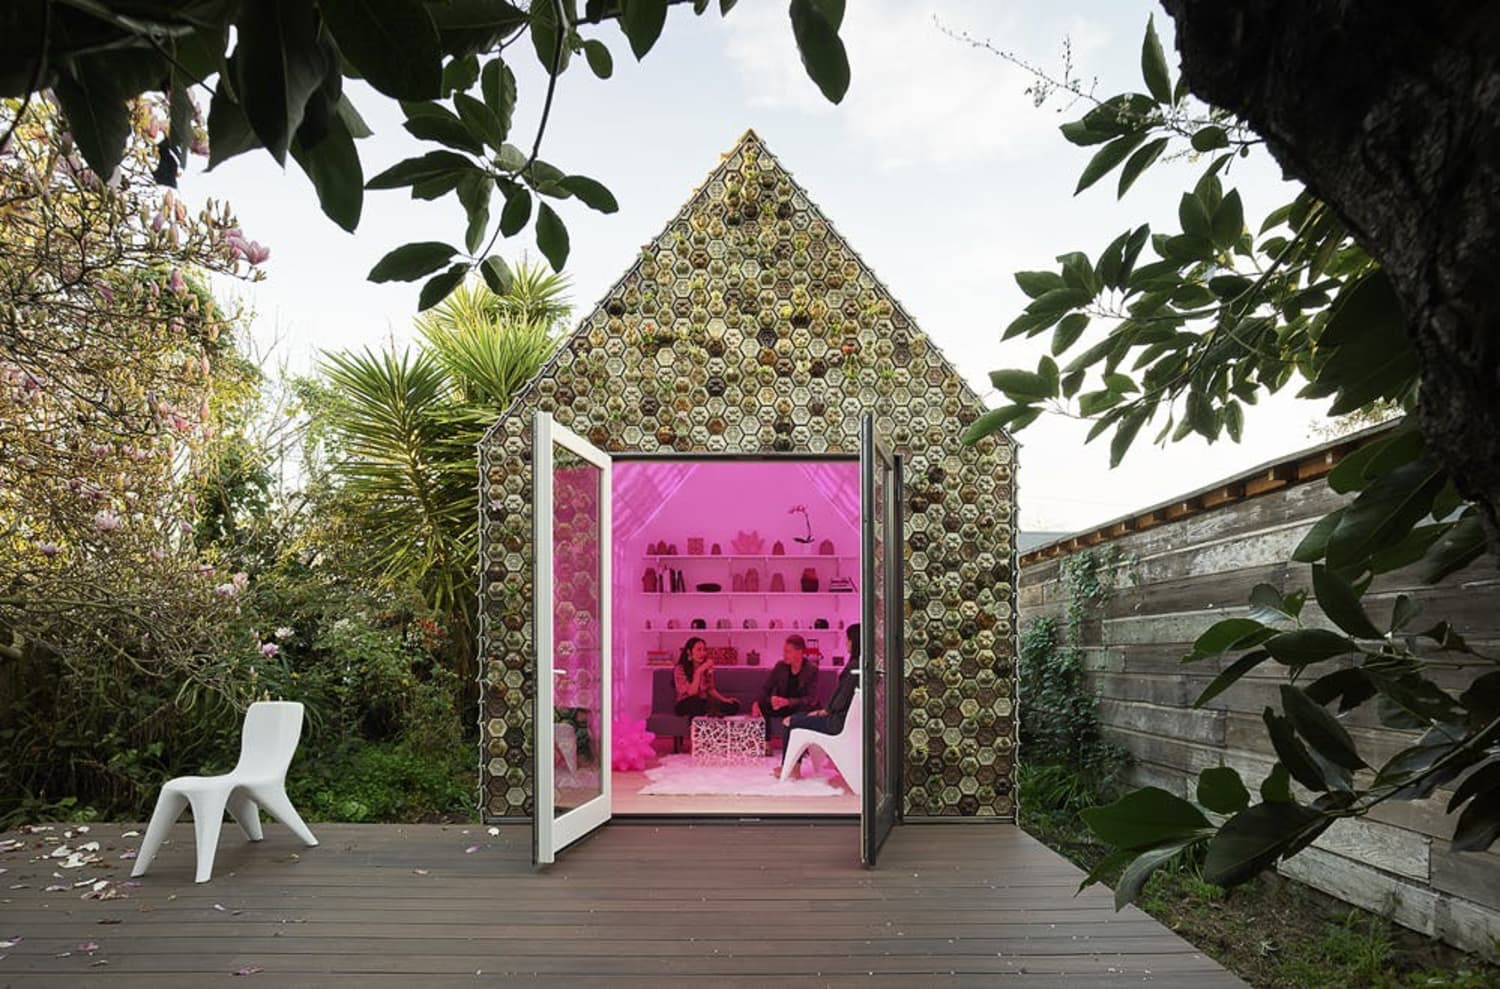 This 3D Printed Tiny House Has Actual Succulents In Its Tiles